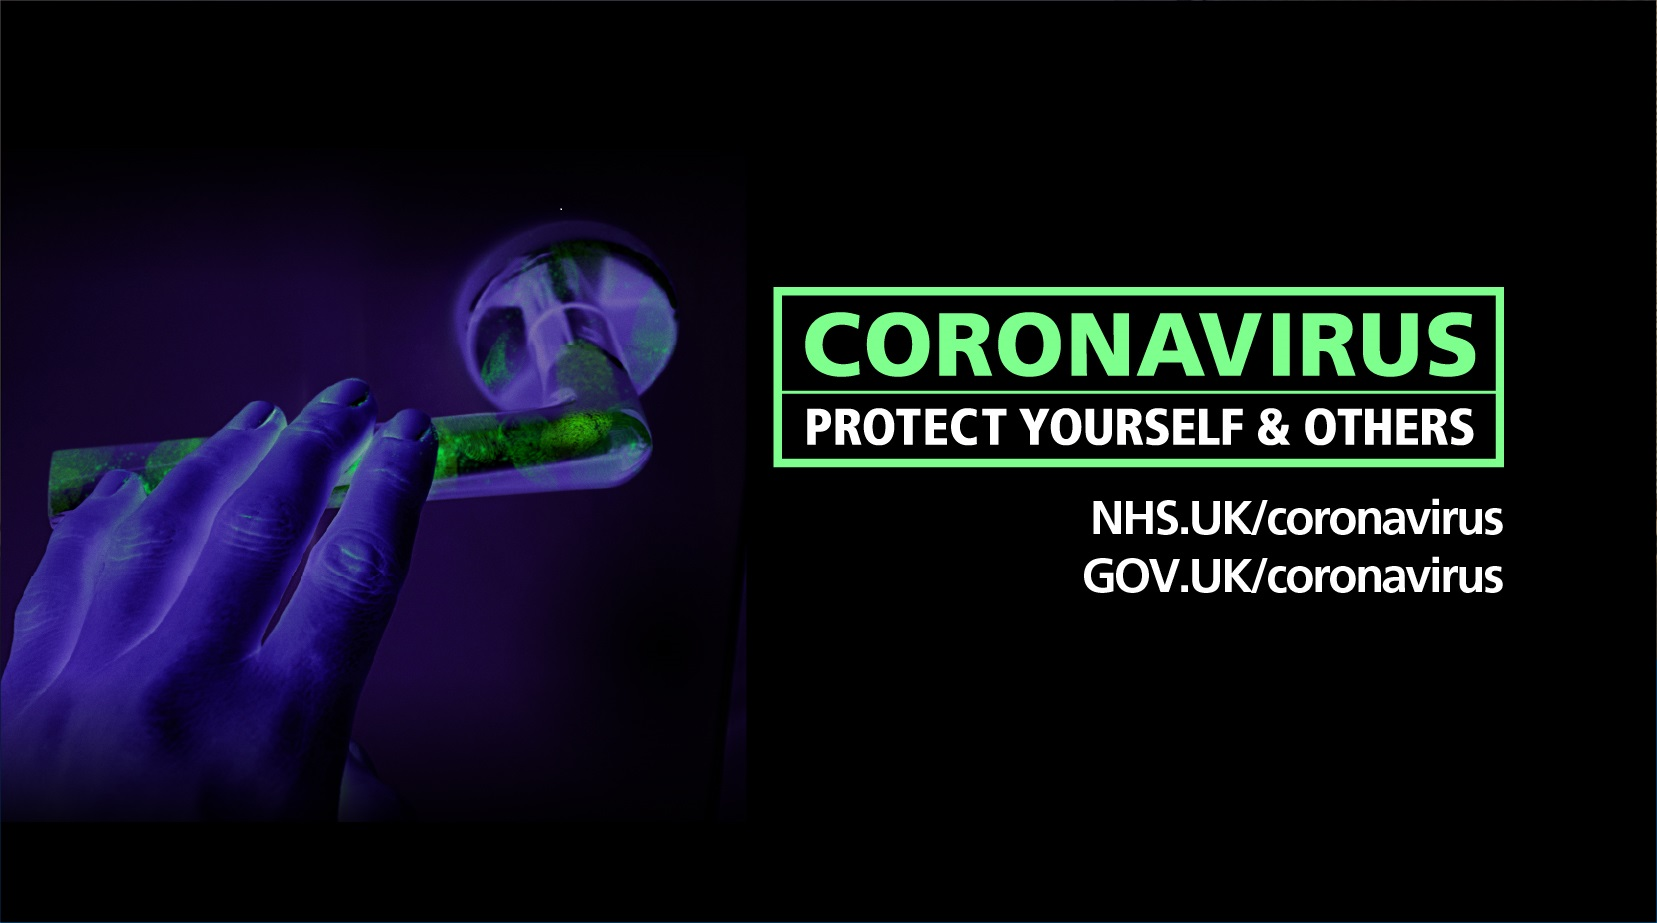 Kent Update: Coronavirus (COVID-19) cases confirmed in Kent